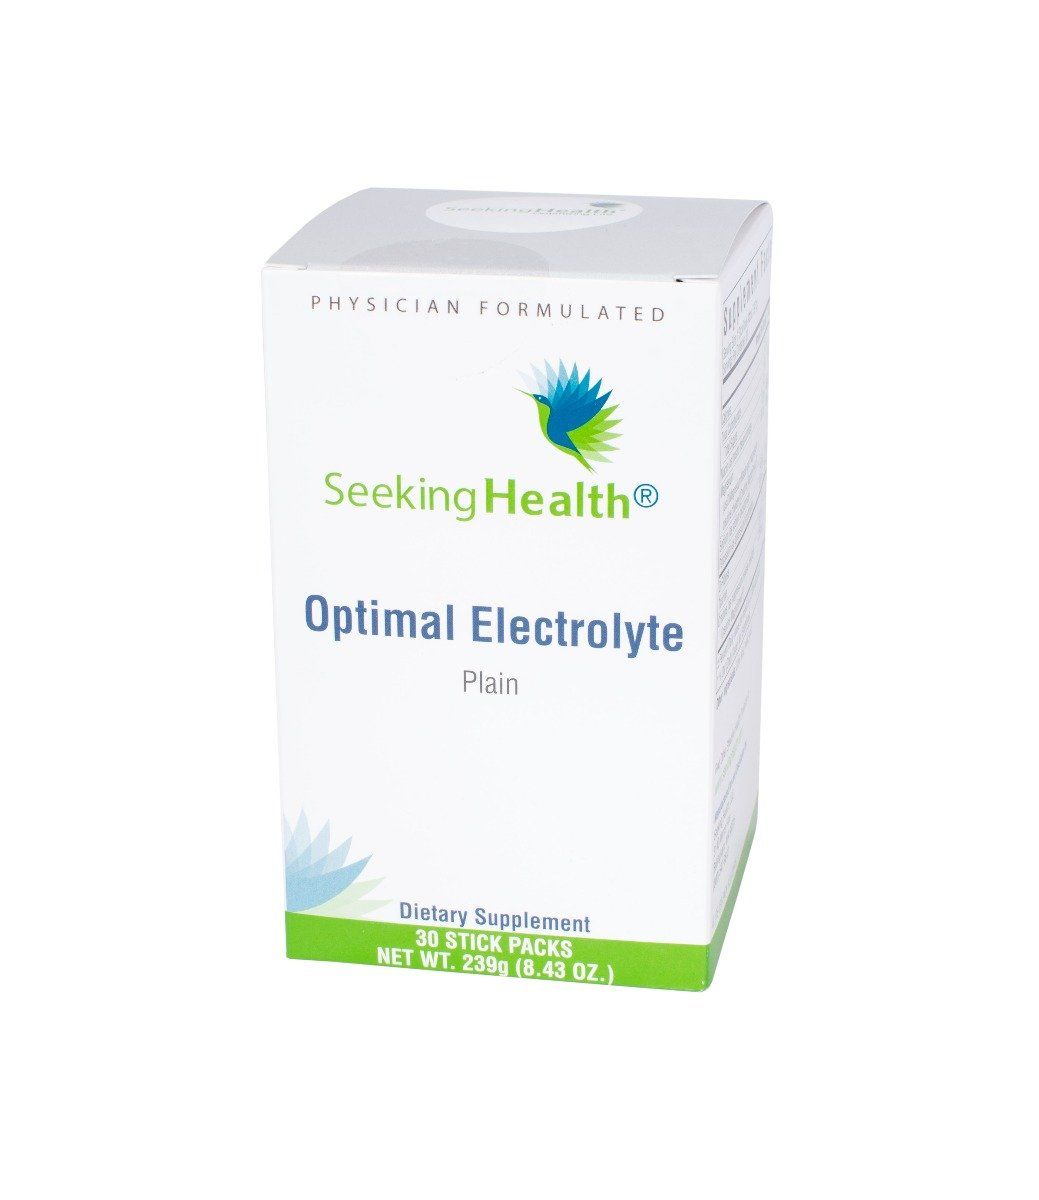 Optimal Electrolyte Seltzer 30 Stick Packs